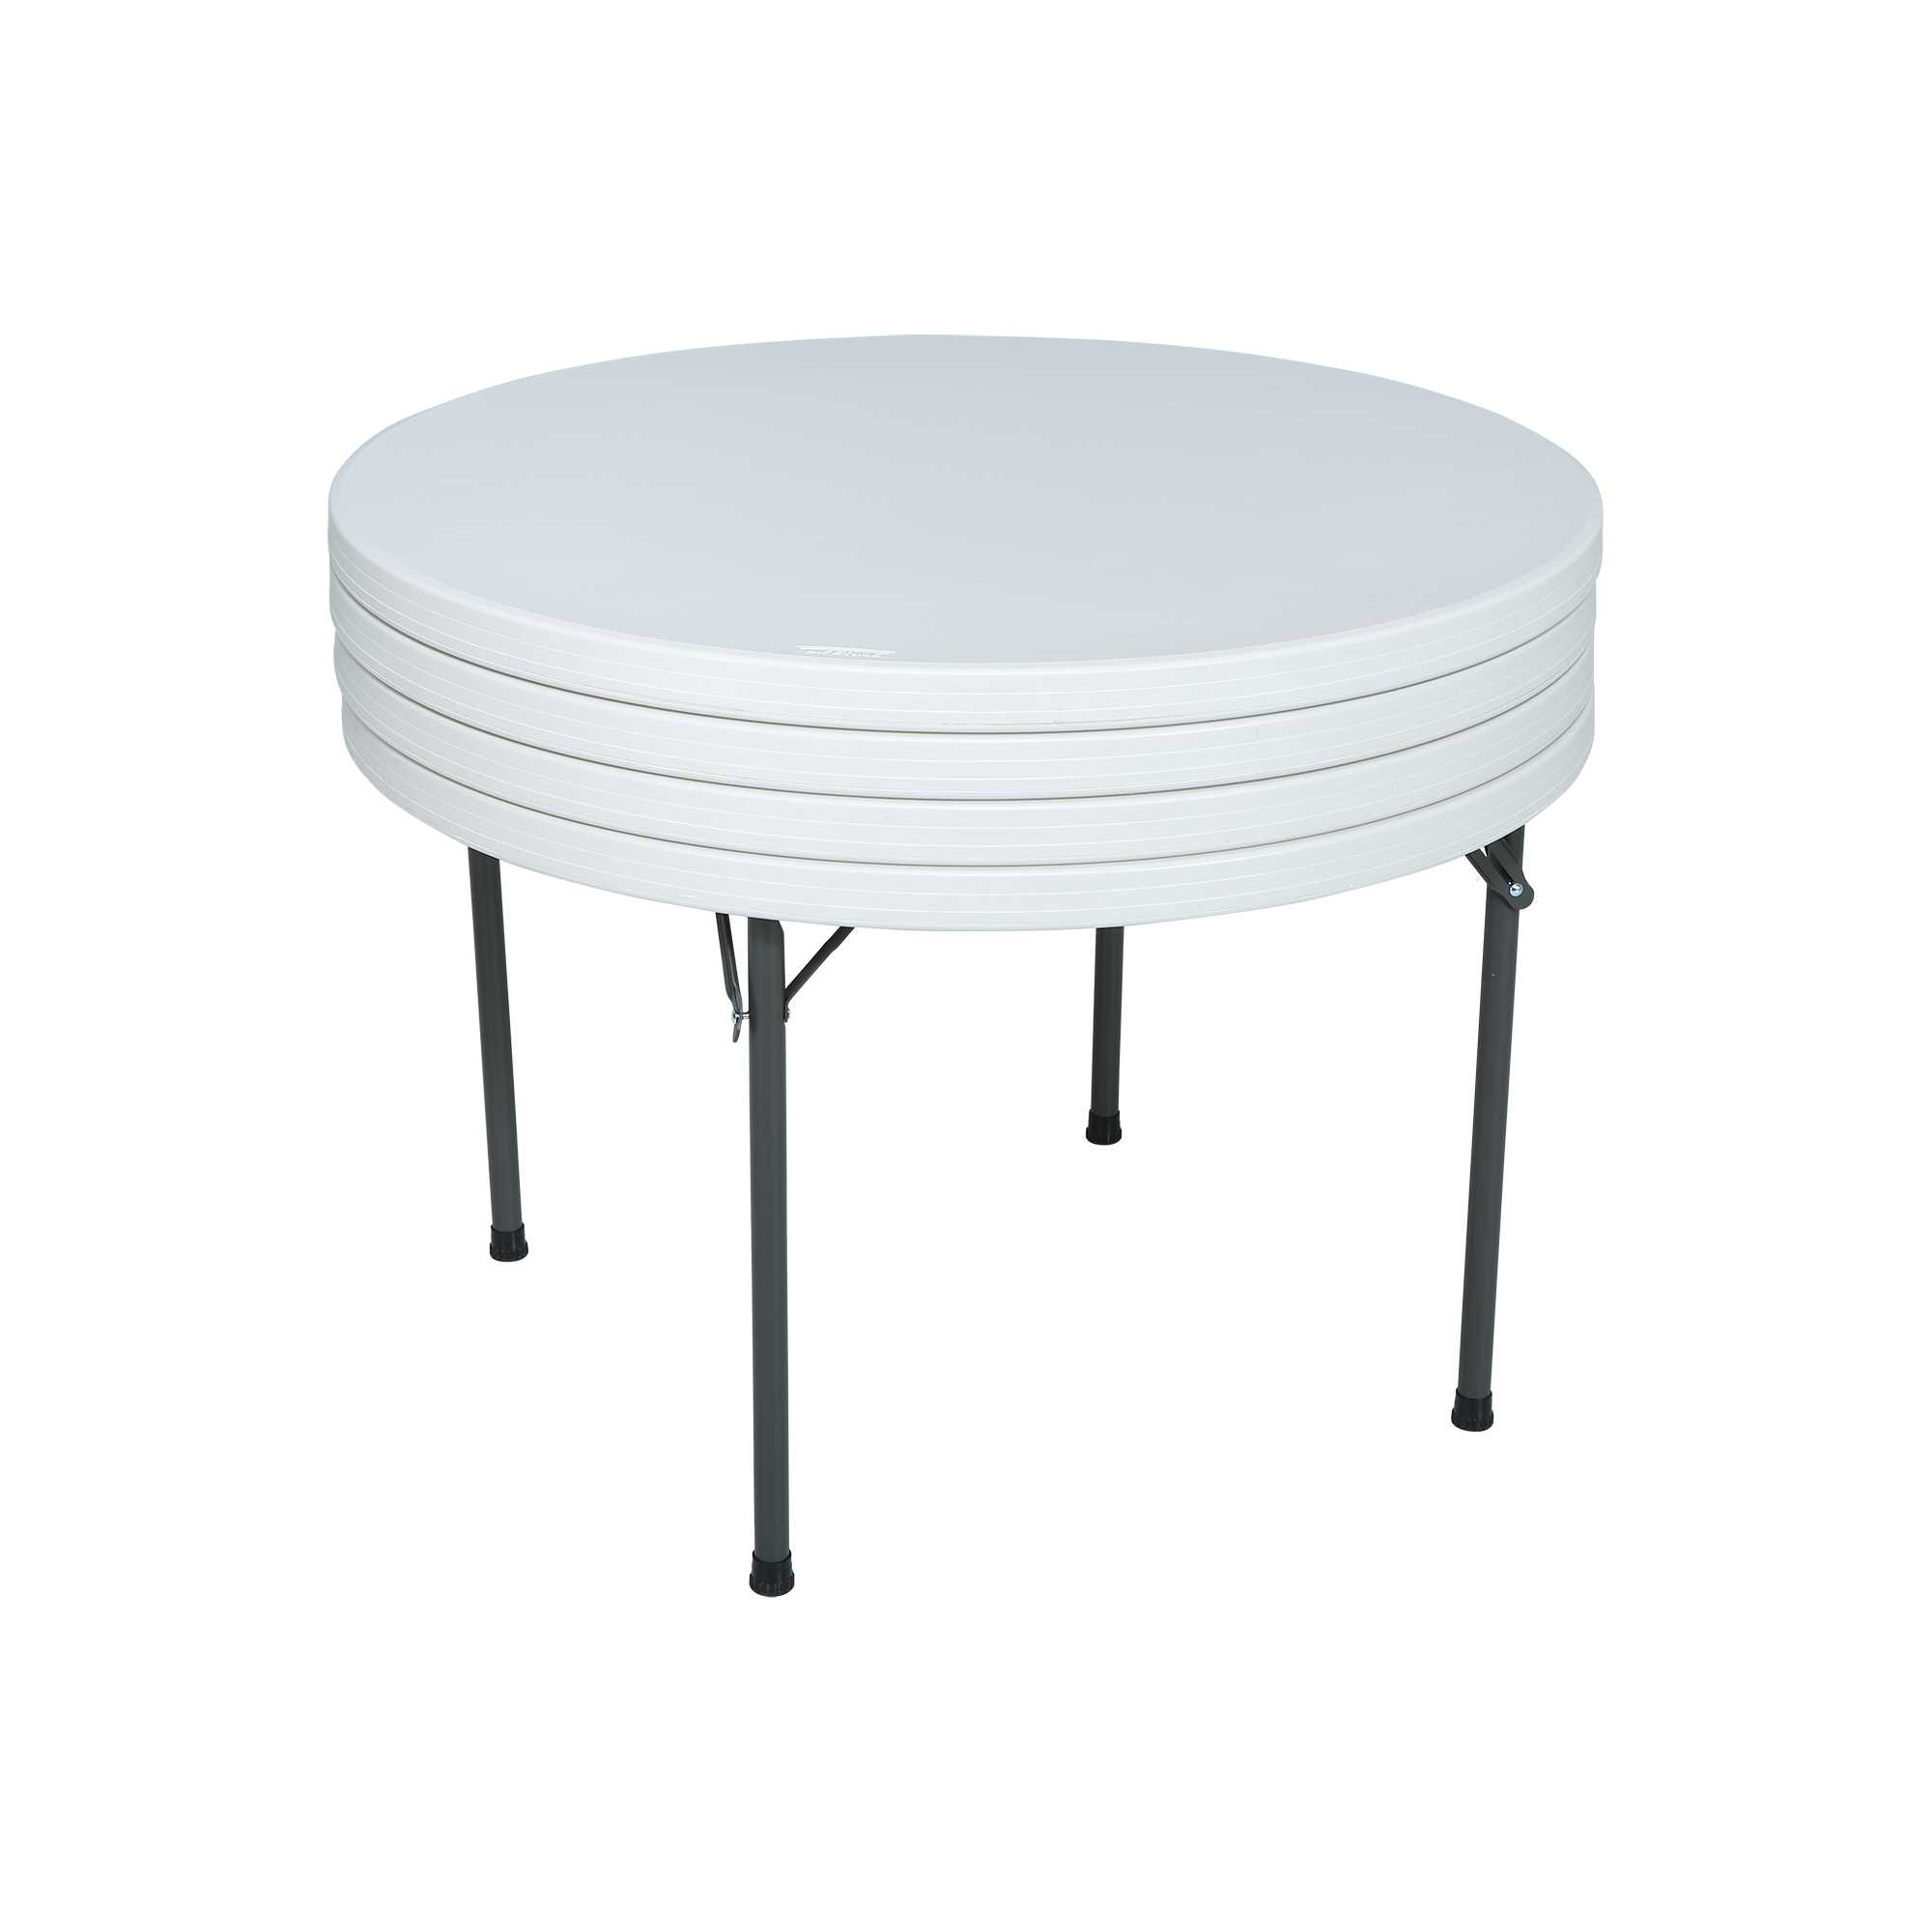 Table pliante ronde dia 122cm 4 6 personnes table for Table ronde 6 personnes